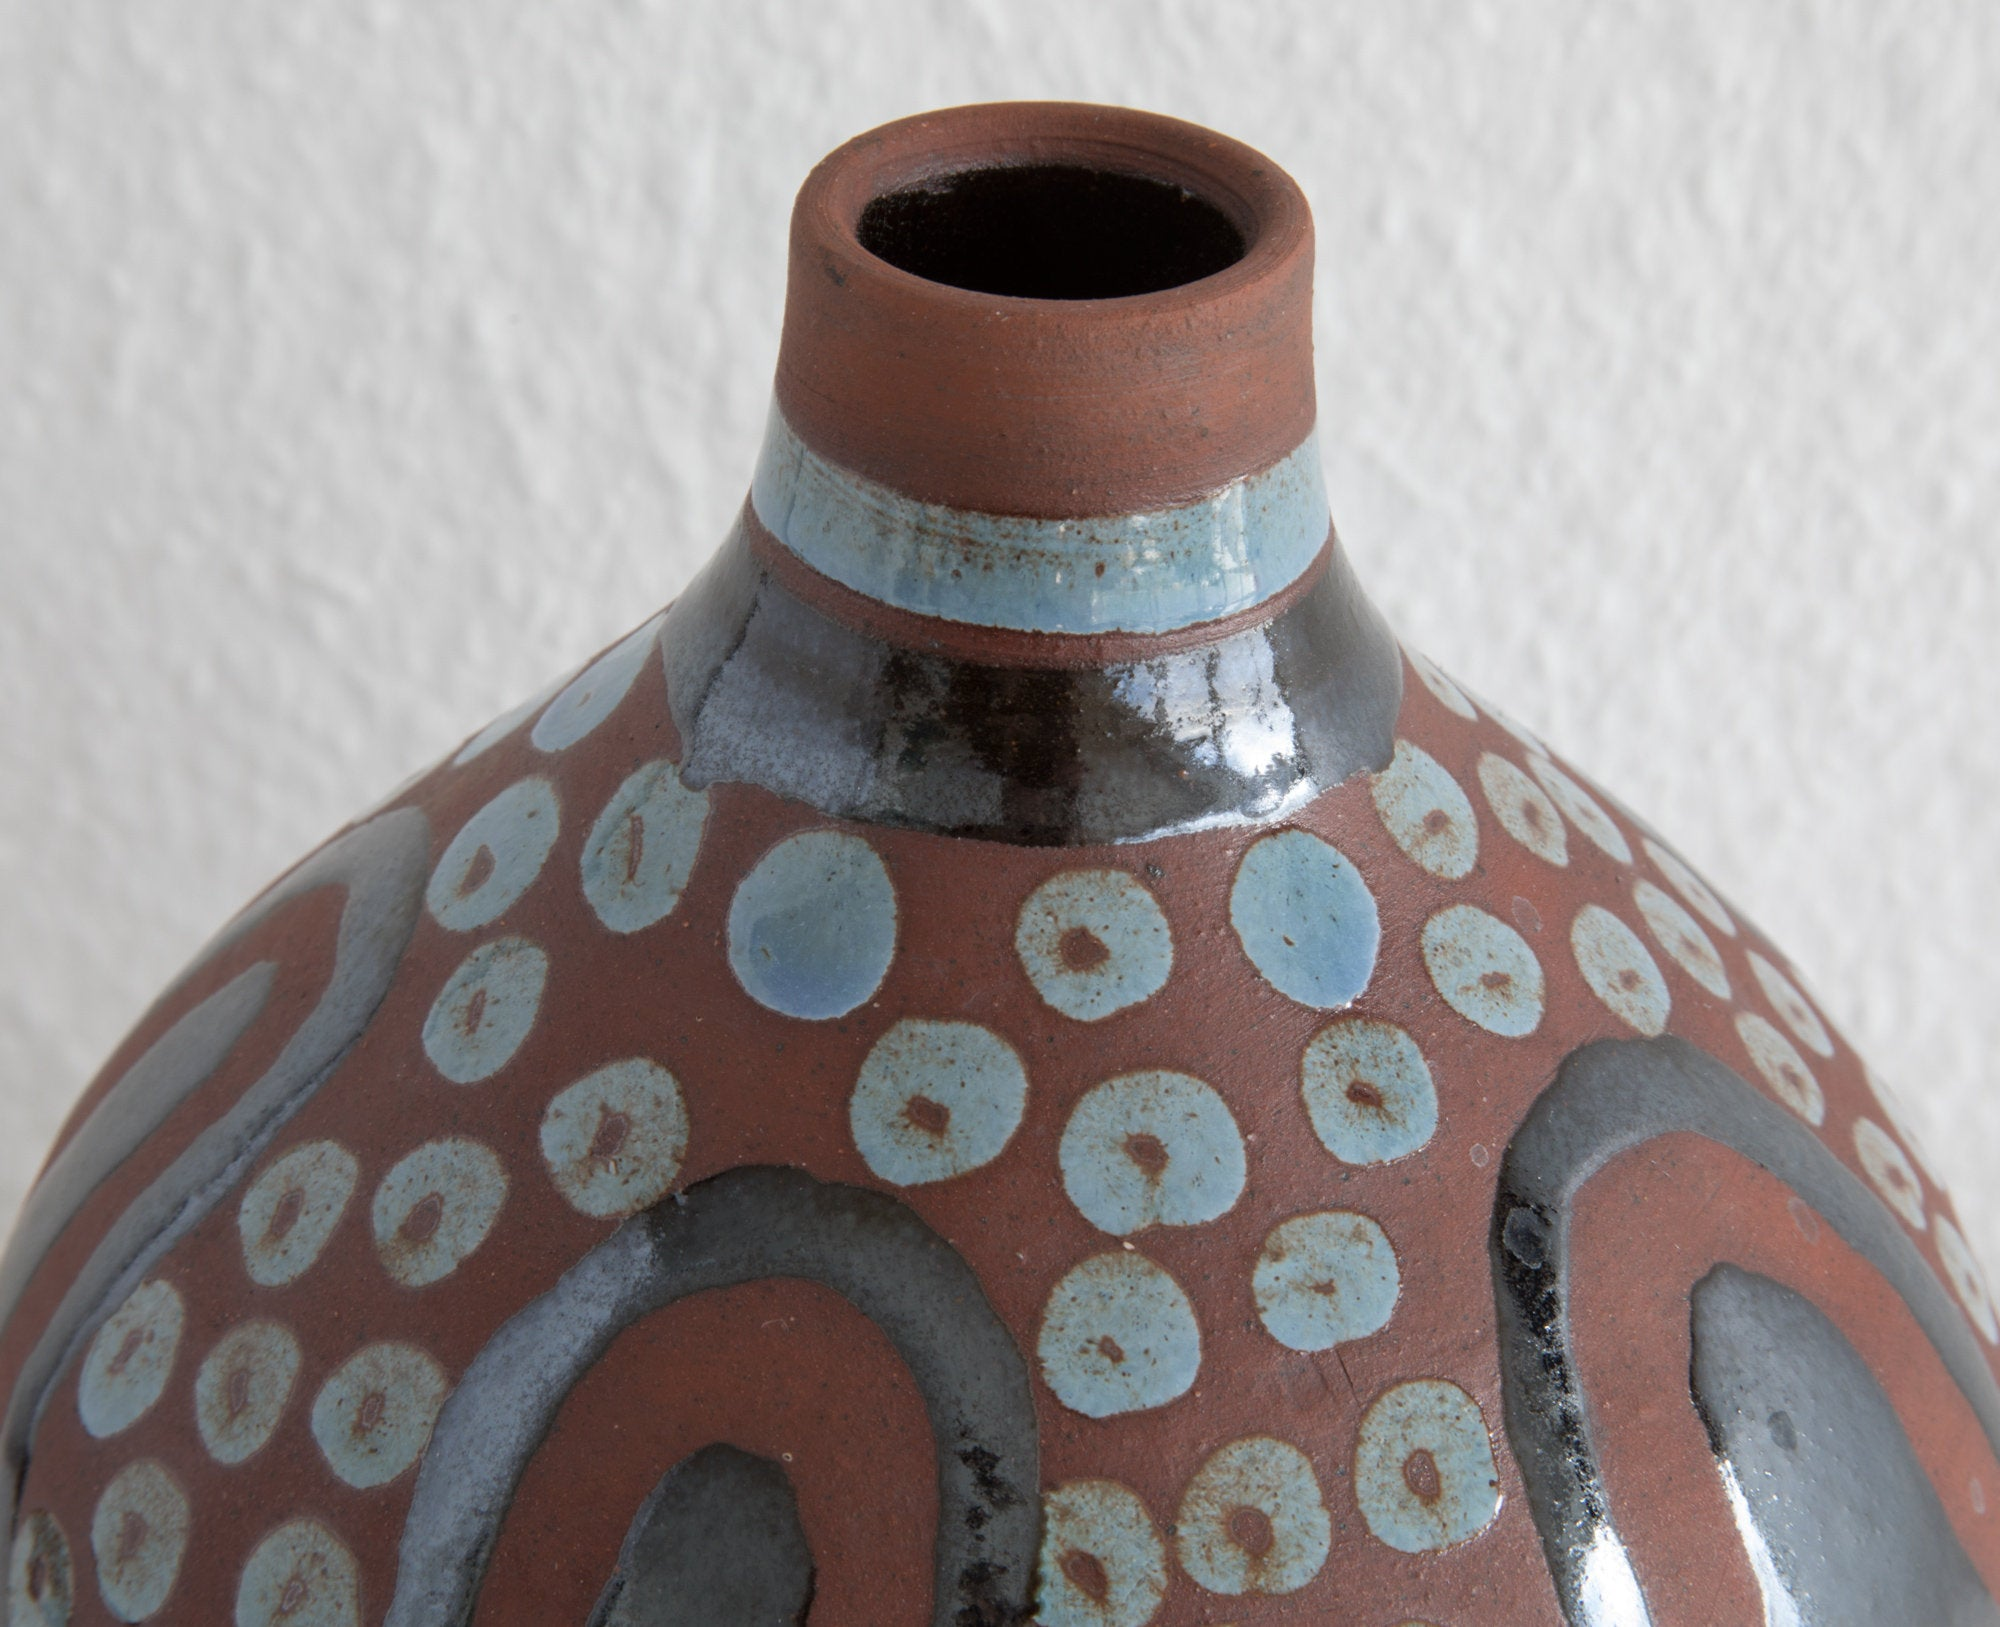 OSA Aase Frederiksen Abstract Grey Black Decorated Ceramic Vase - Mollaris.com